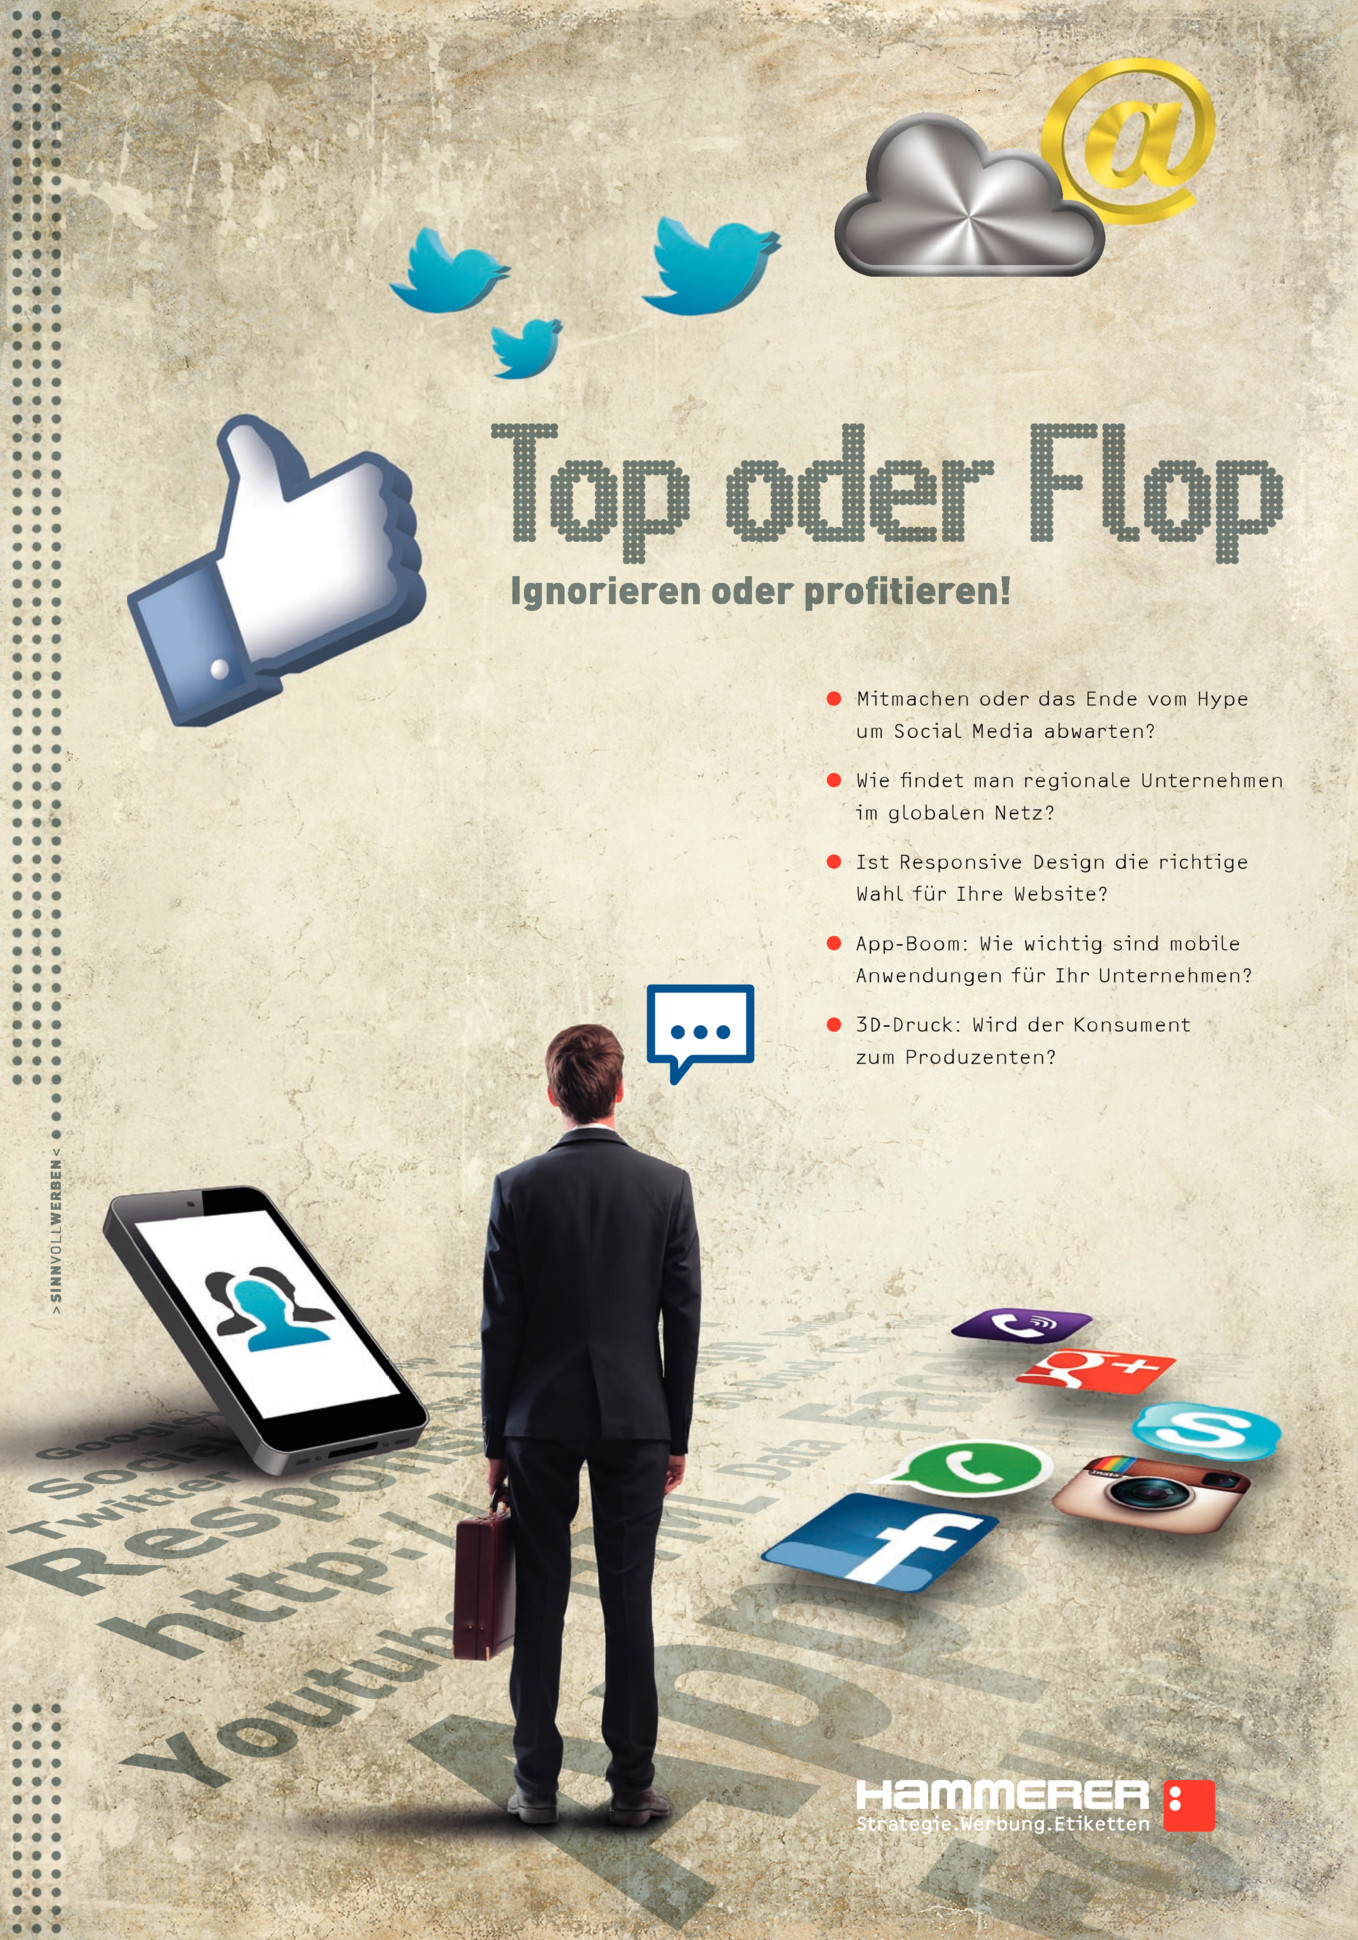 Newsletter Top oder Flop